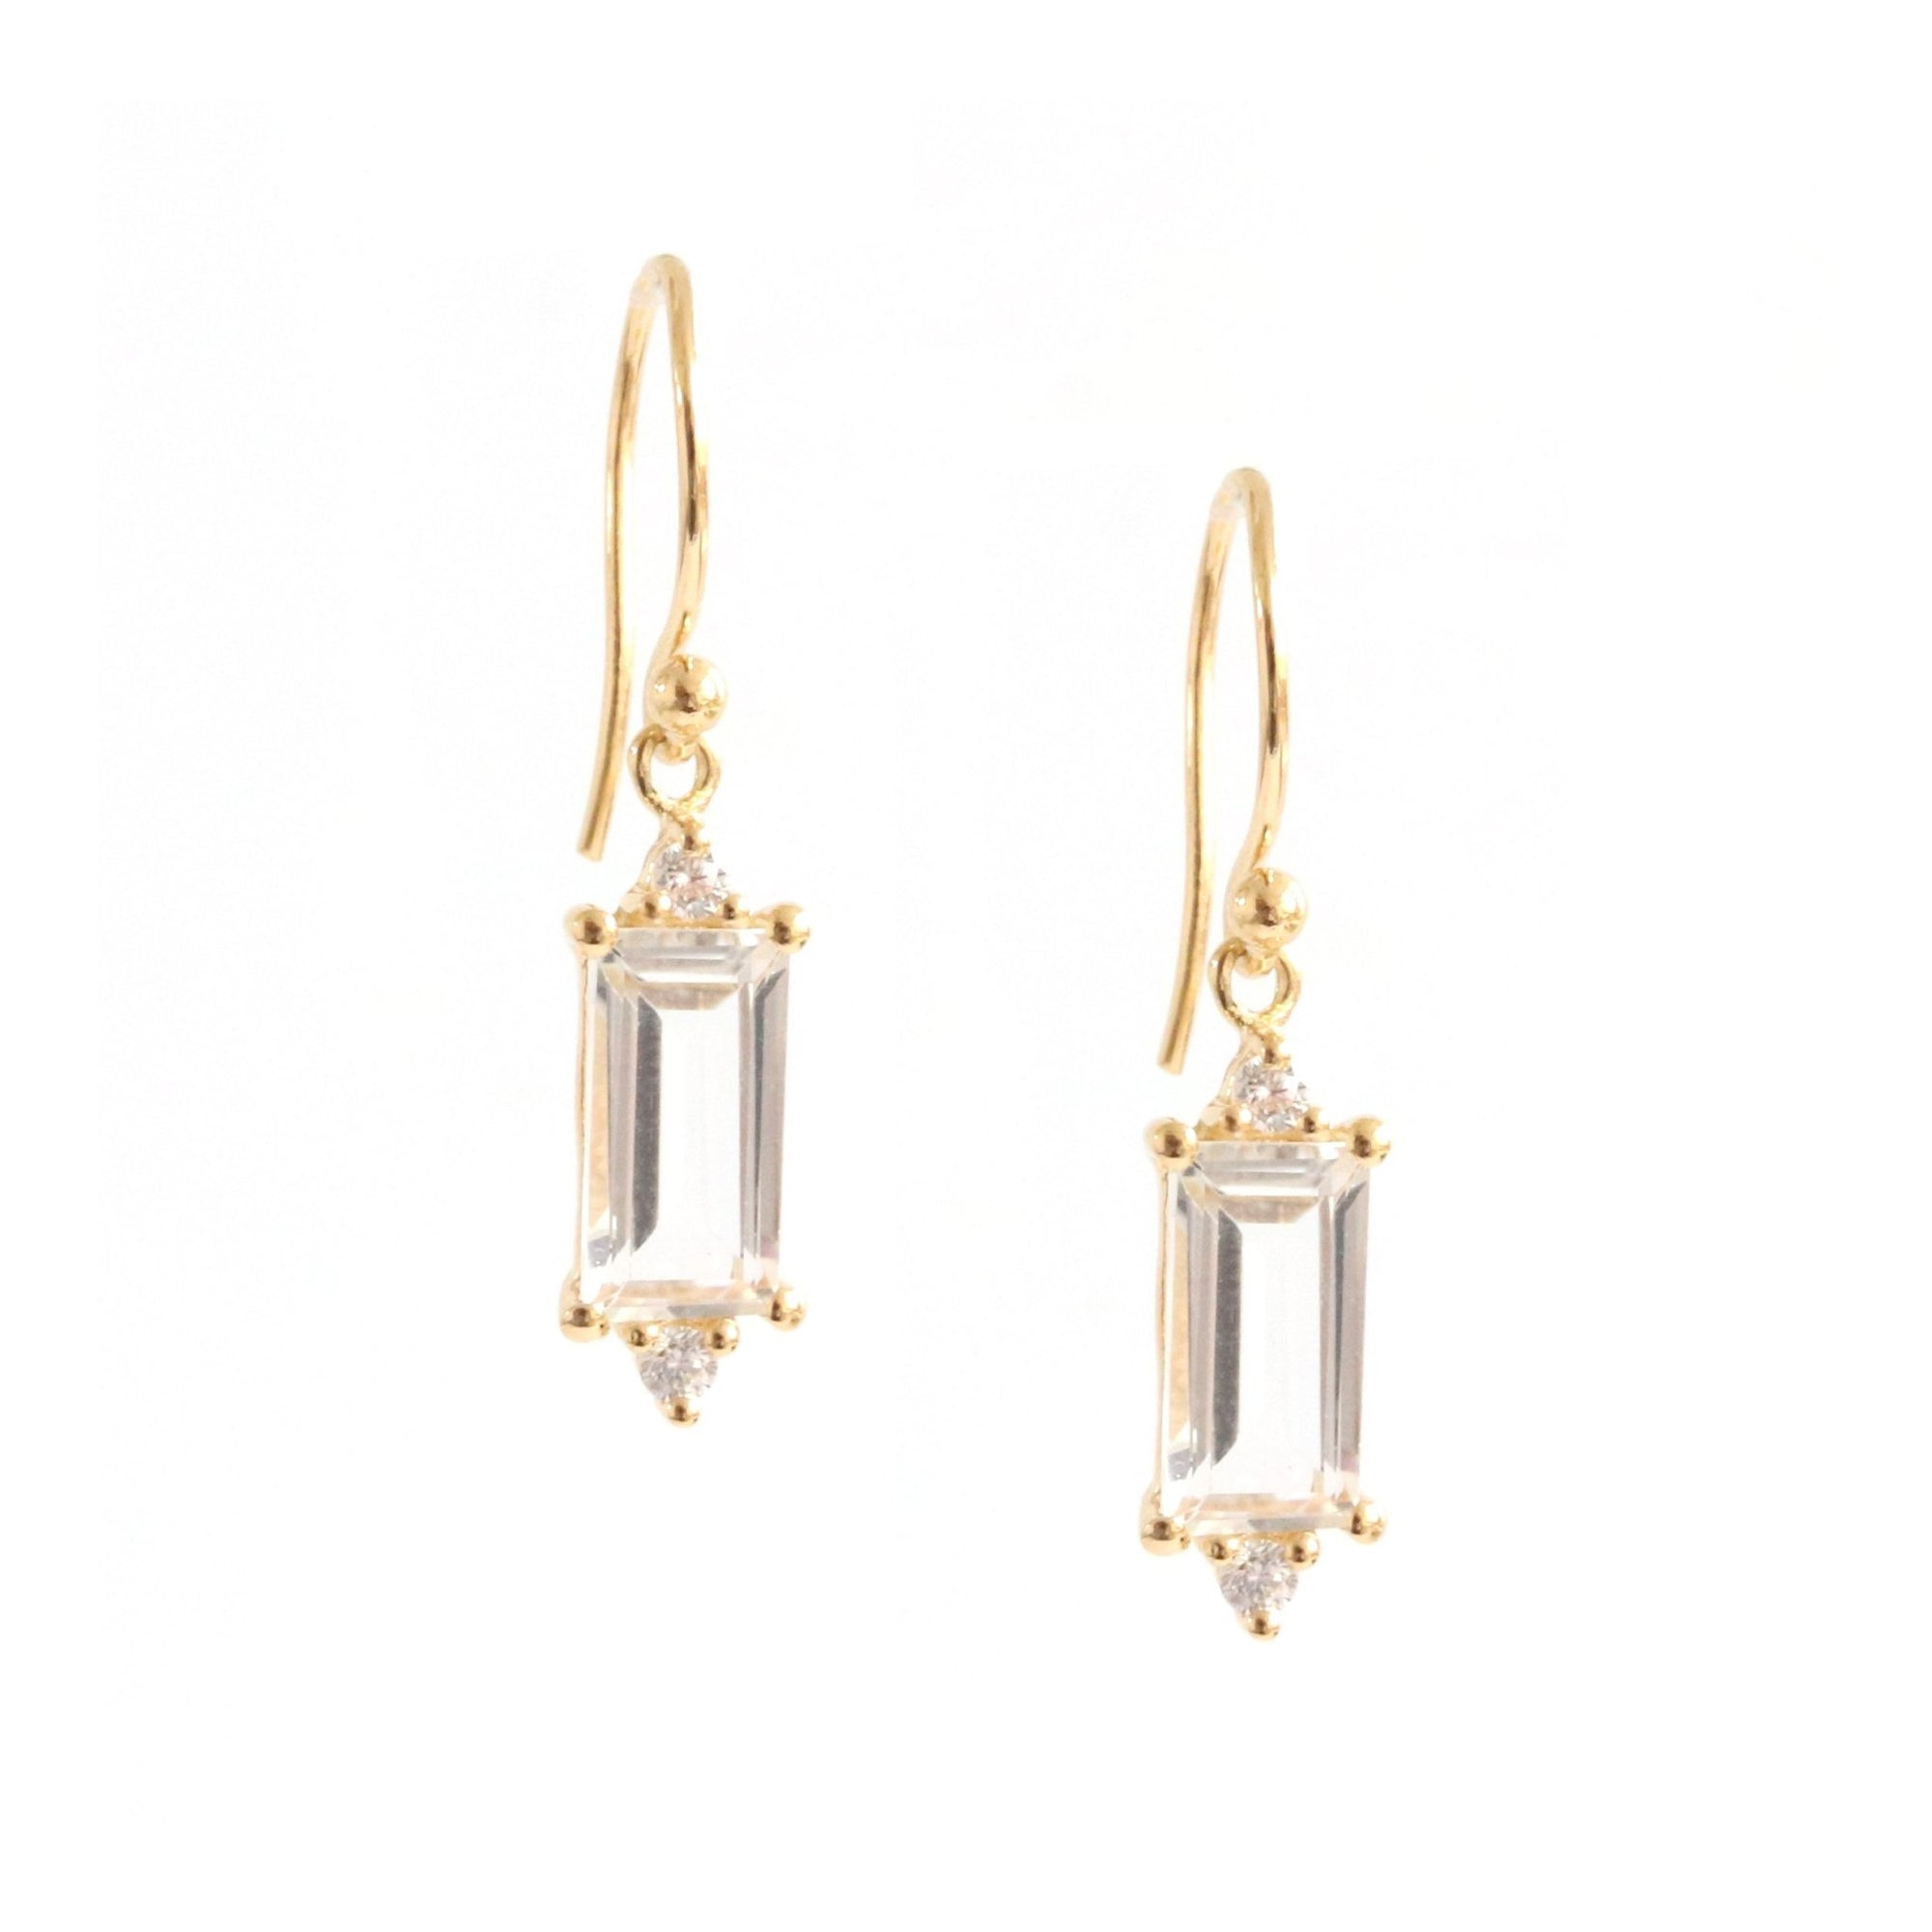 Loyal Drop Earrings - White Topaz, Cubic Zirconia & Gold - SO PRETTY CARA COTTER